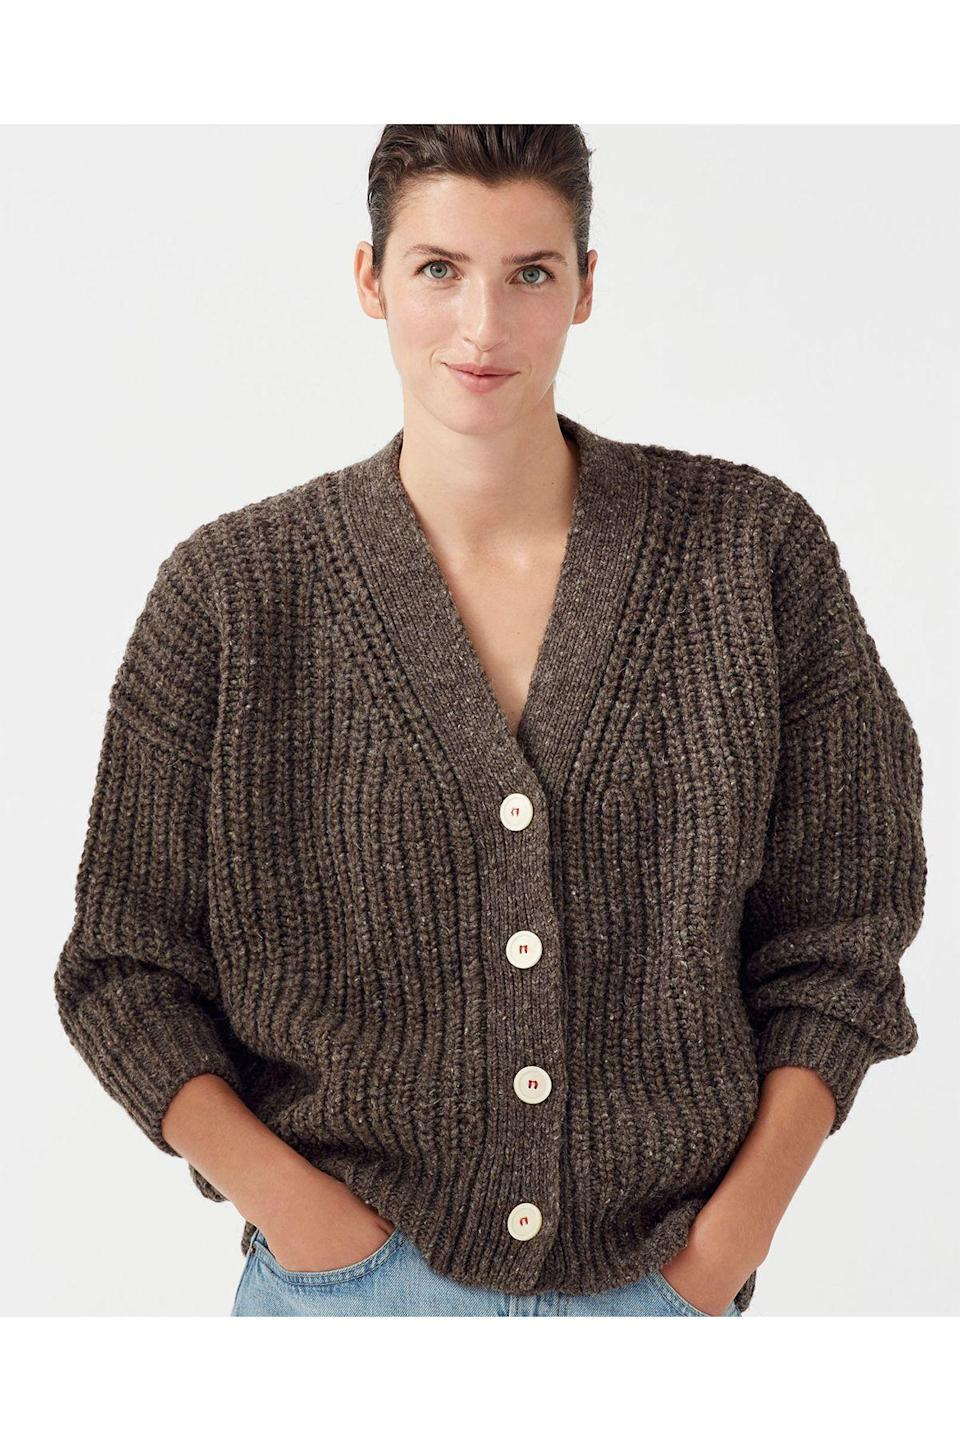 """<p><strong>Babaã</strong></p><p>babaa.es</p><p><strong>230.00</strong></p><p><a href=""""https://babaa.es/shop/women/women-cardigans/cardigan-woman-no19-oak/"""" rel=""""nofollow noopener"""" target=""""_blank"""" data-ylk=""""slk:Shop Now"""" class=""""link rapid-noclick-resp"""">Shop Now</a></p><p>All Babaà wool is 100% natural, and pieces are made locally in Spain by artisans. Also, samples are donated to CEAR, a refugee center in Getafe, Madrid.</p>"""